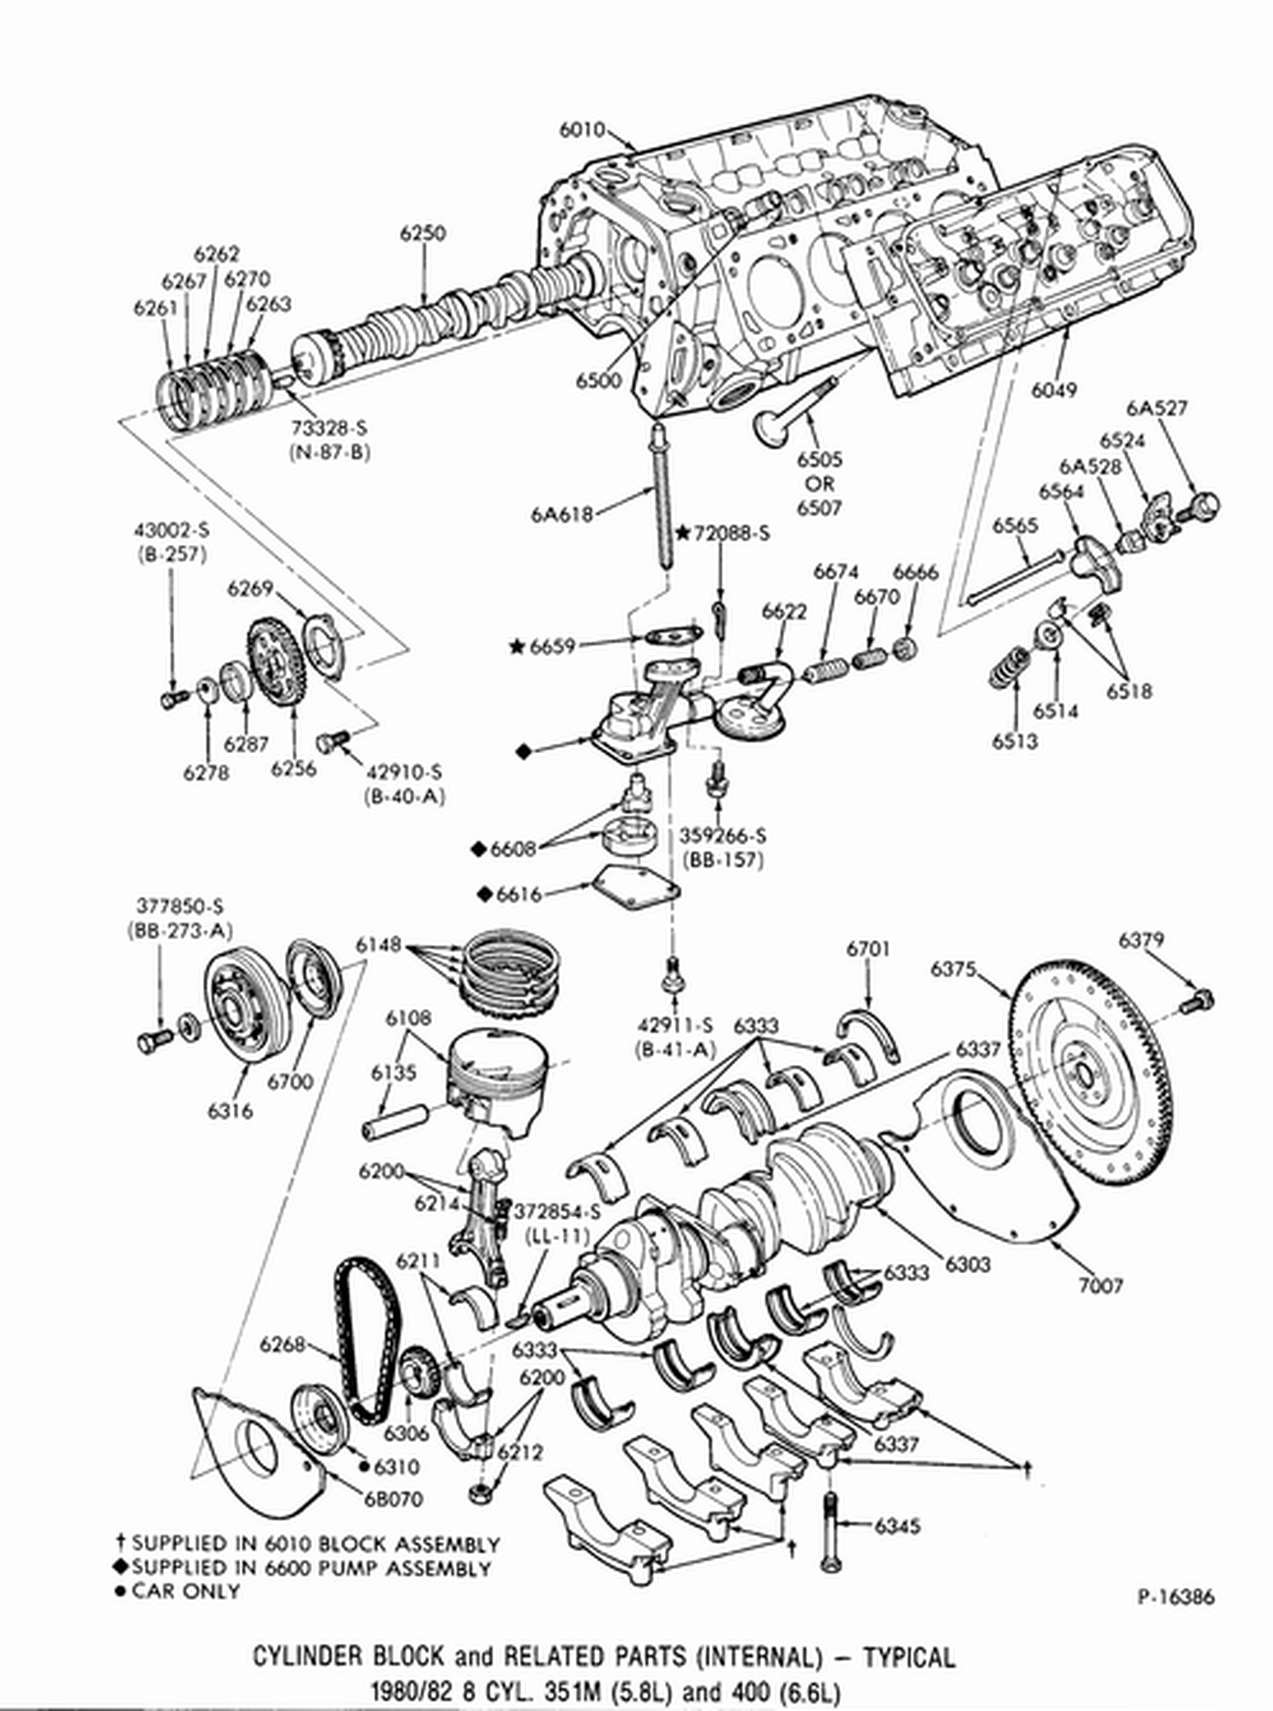 Jeep Wrangler Engine Diagram Starter 40 Ford Crankshaft Simple Wiring Diagrams Library 2002